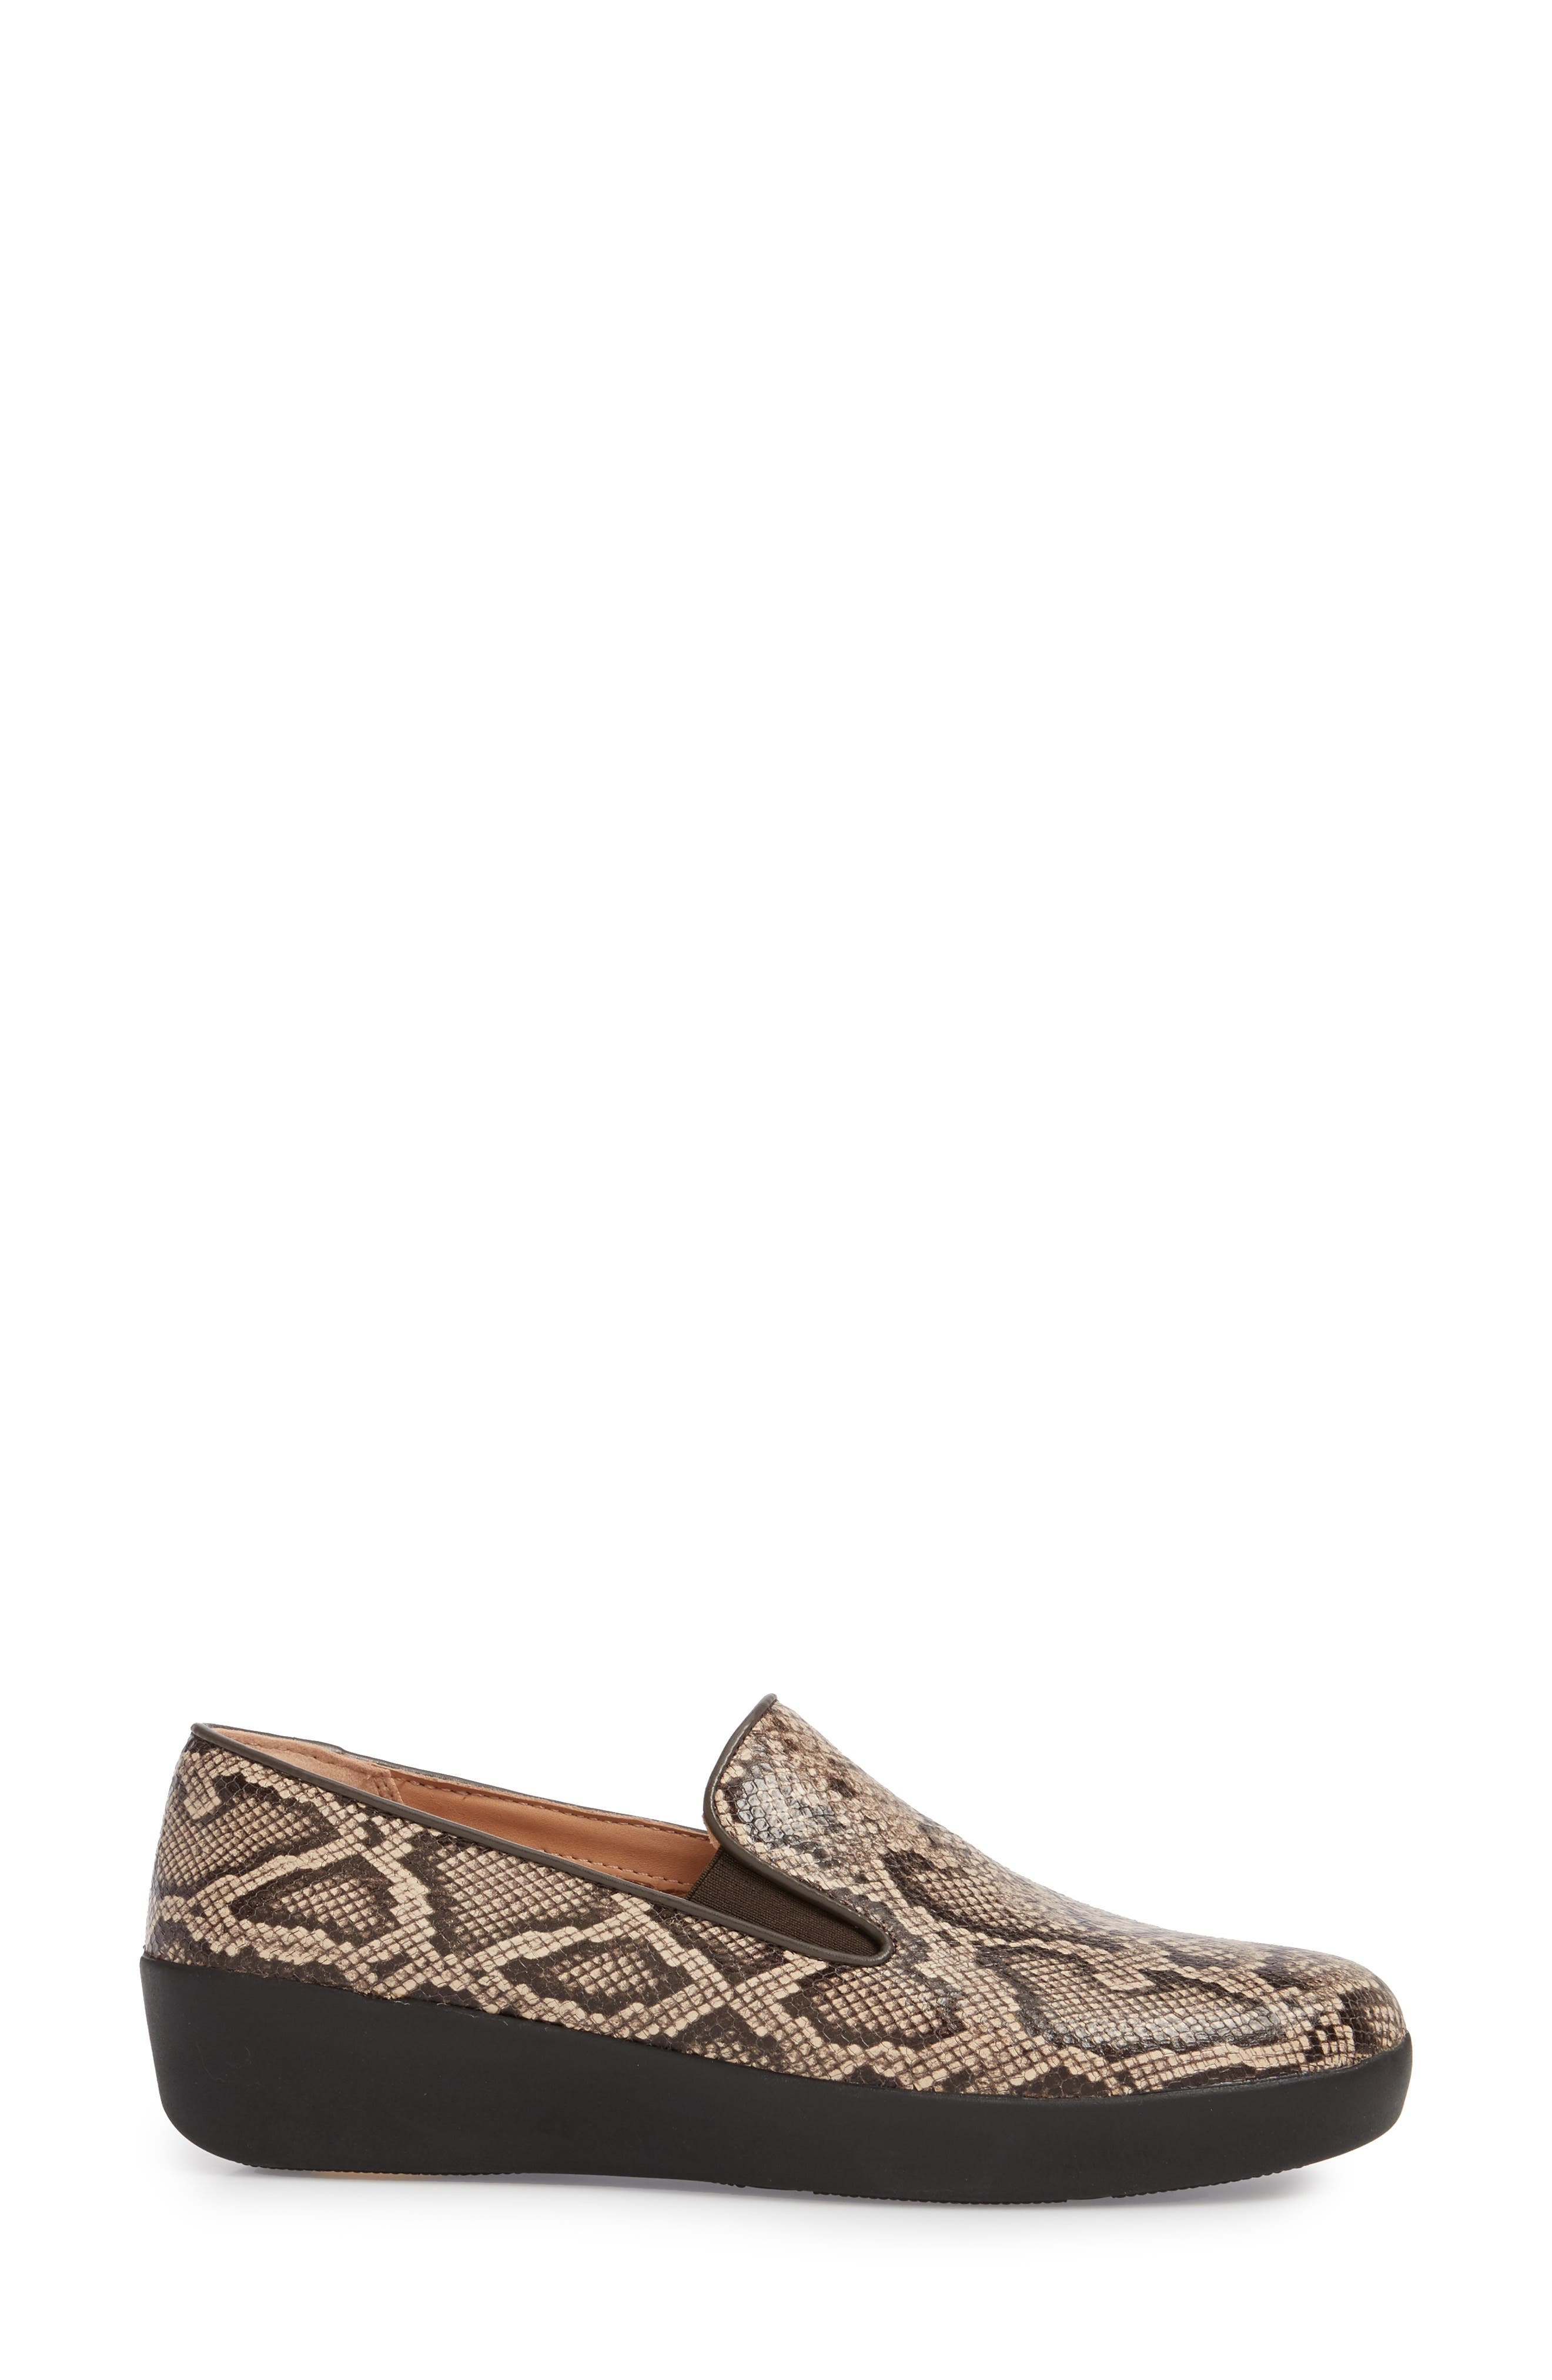 SuperSkate<sup>™</sup> Loafer,                             Alternate thumbnail 3, color,                             TAUPE SNAKE PRINT LEATHER